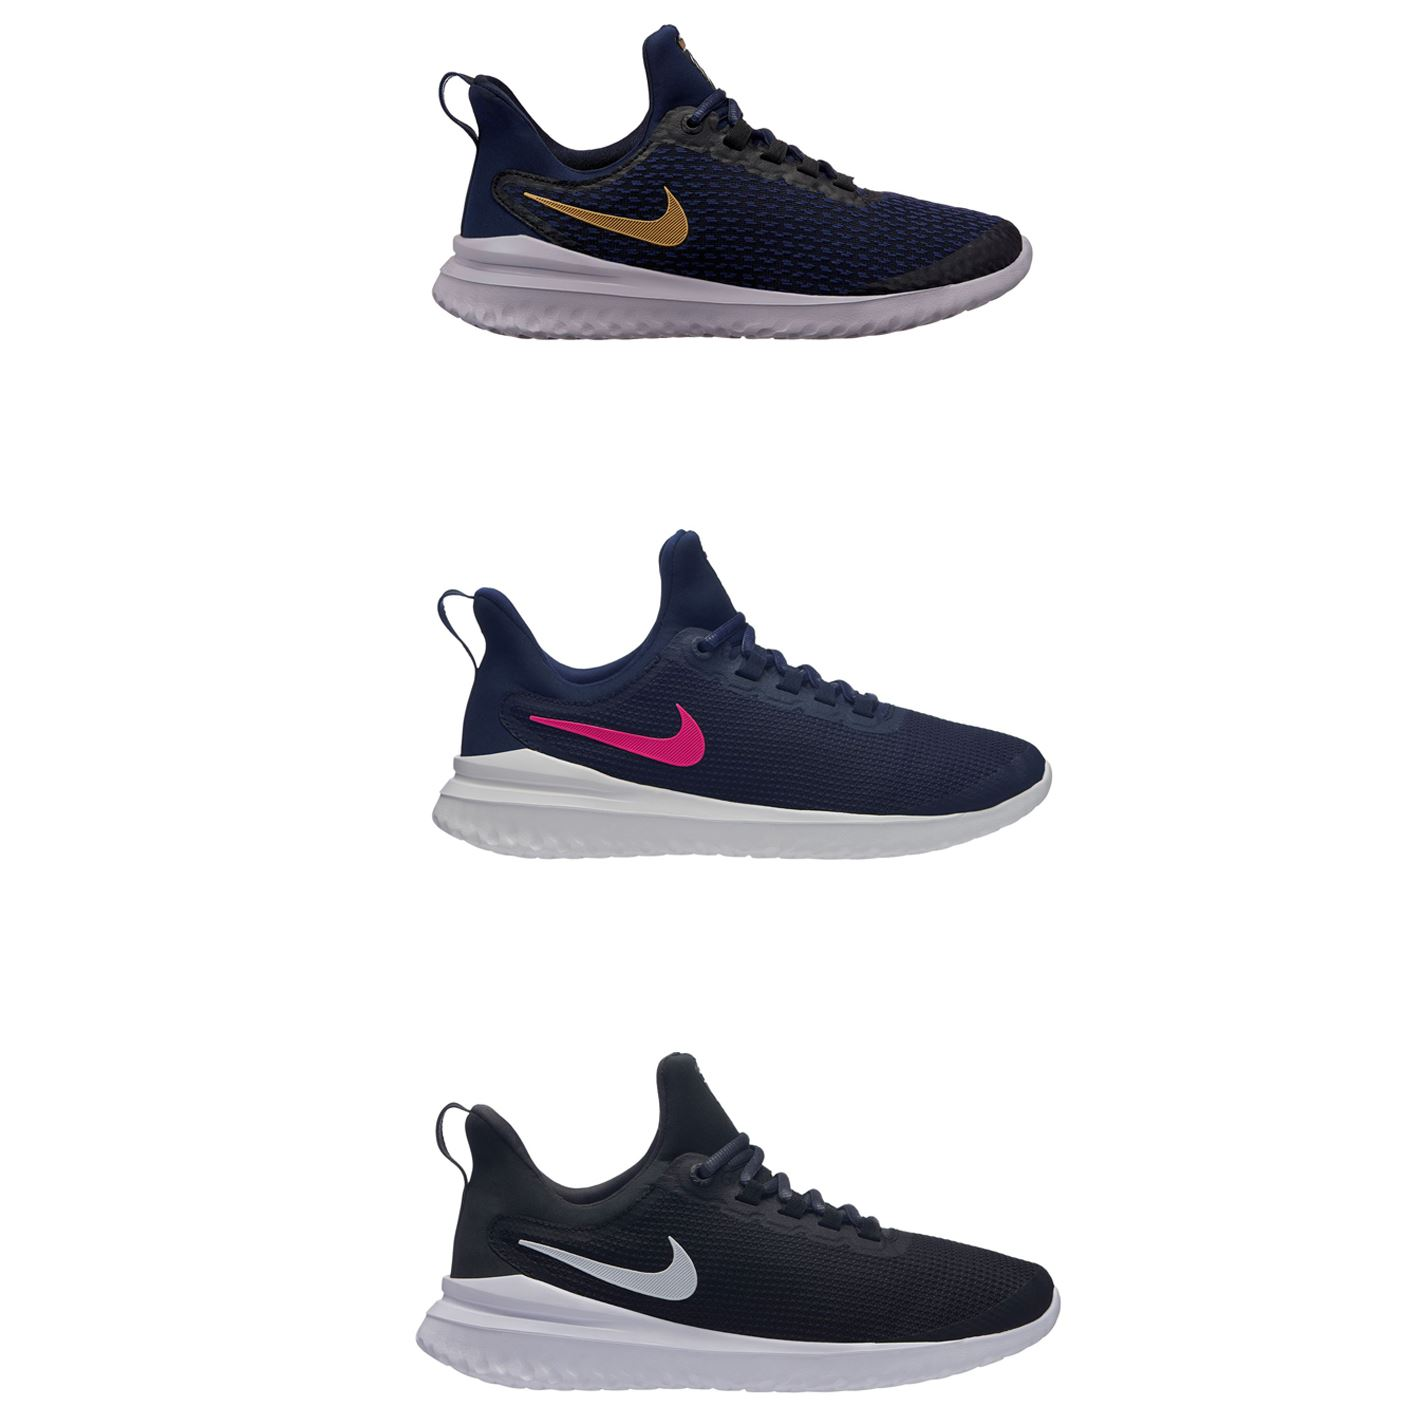 color atractivo mejores telas bonito diseño Nike Renew Rival Running Shoes Womens Jogging Trainers Sneakers Fitness |  eBay